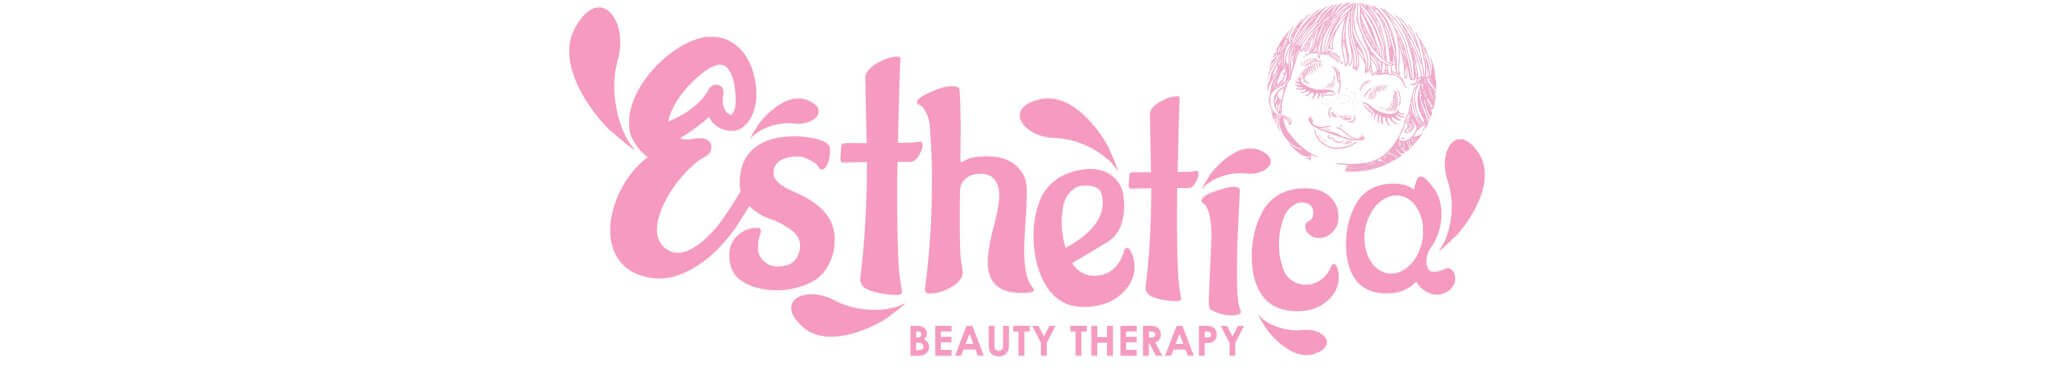 Esthetica Beauty Therapy